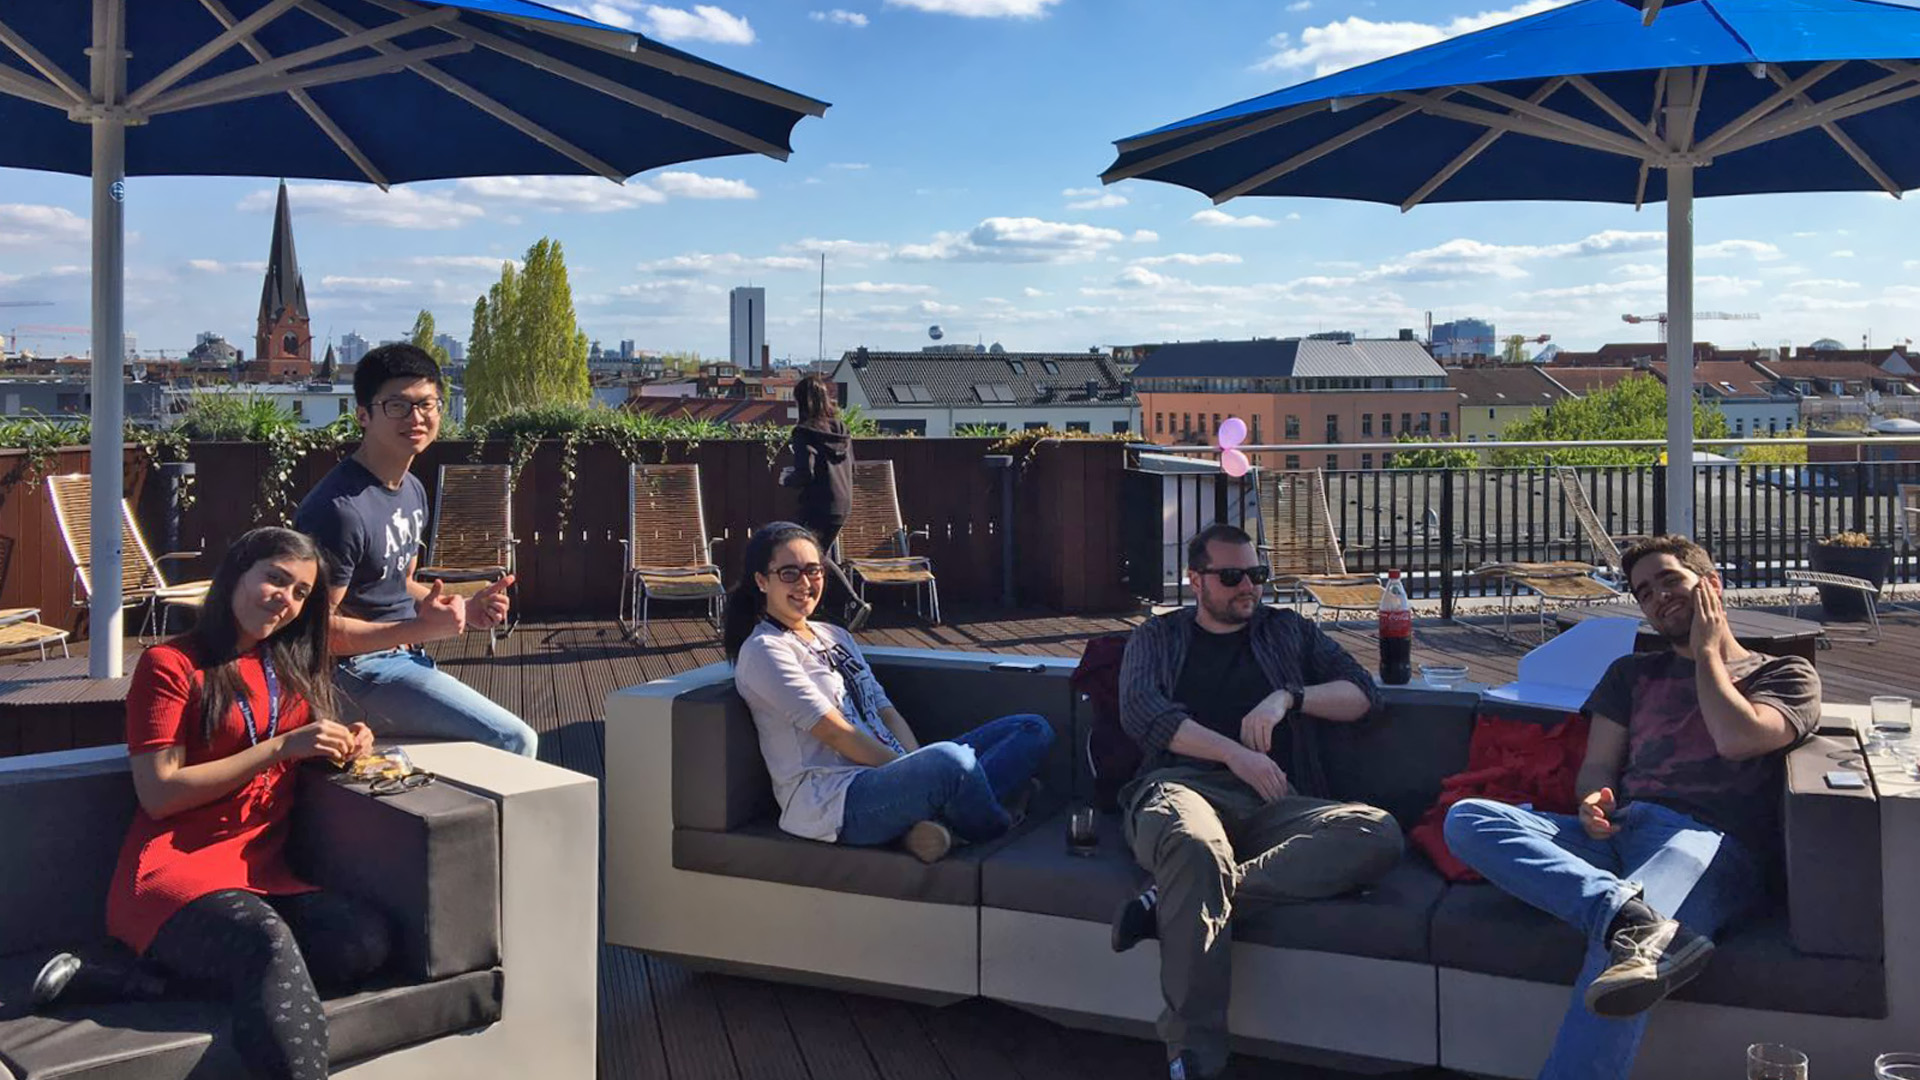 The institute's rooftop terrace with a wonderful view over Berlin